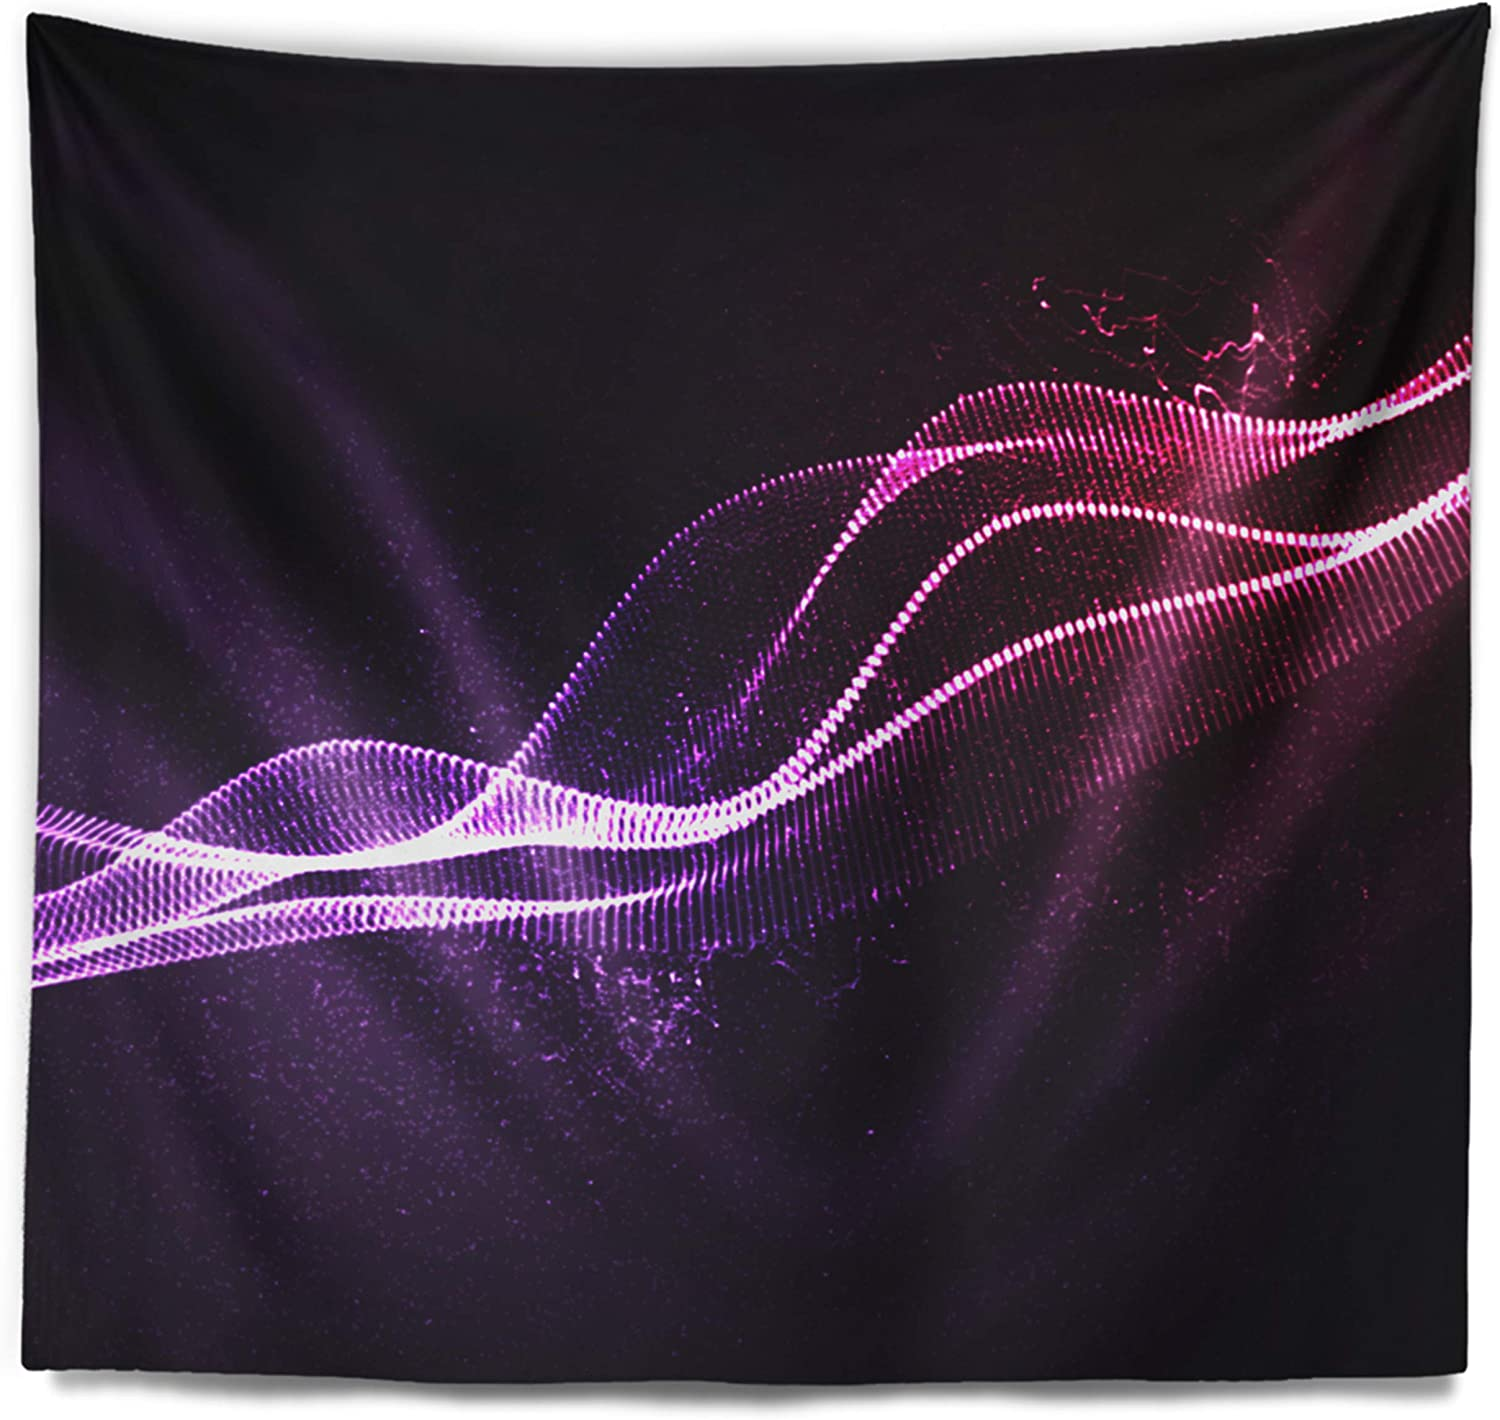 Amazon Com Designart Neon 3d Digital Wave Abstract Tapestry Blanket Décor Wall Art For Home And Office Created On Lightweight Polyester Fabric Medium 39 In X 32 In Arts Crafts Sewing